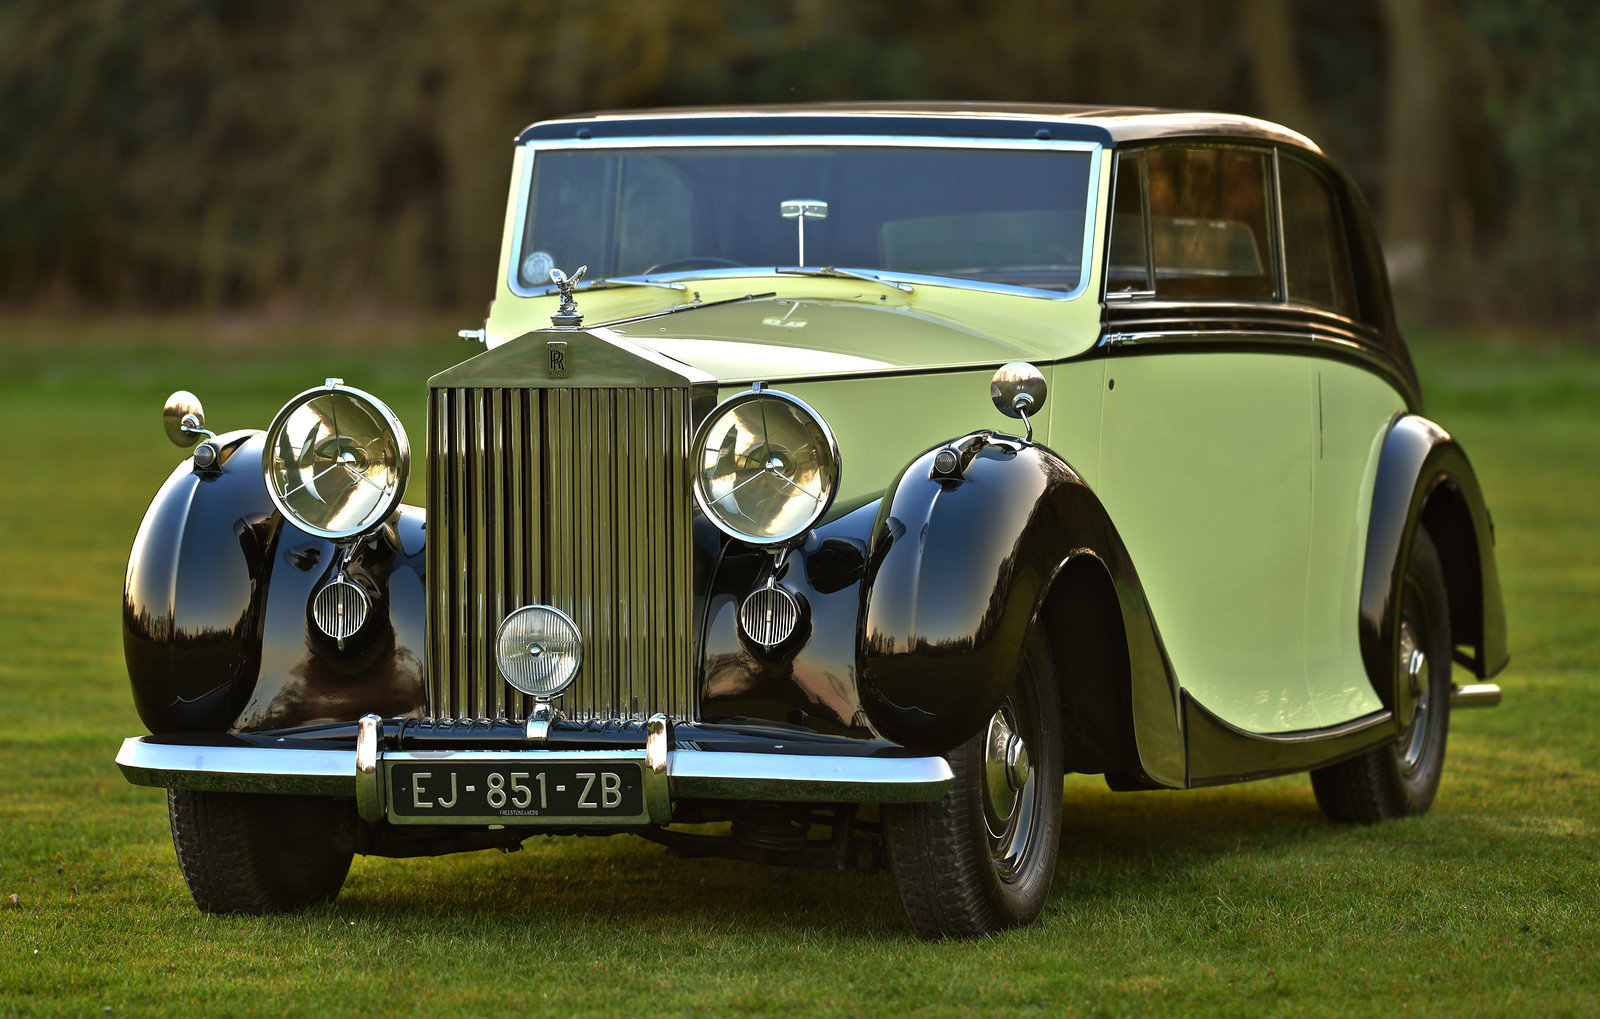 1947 Rolls Royce Silver Wraith Freestone & Webb 2 door Coupe For Sale (picture 1 of 6)